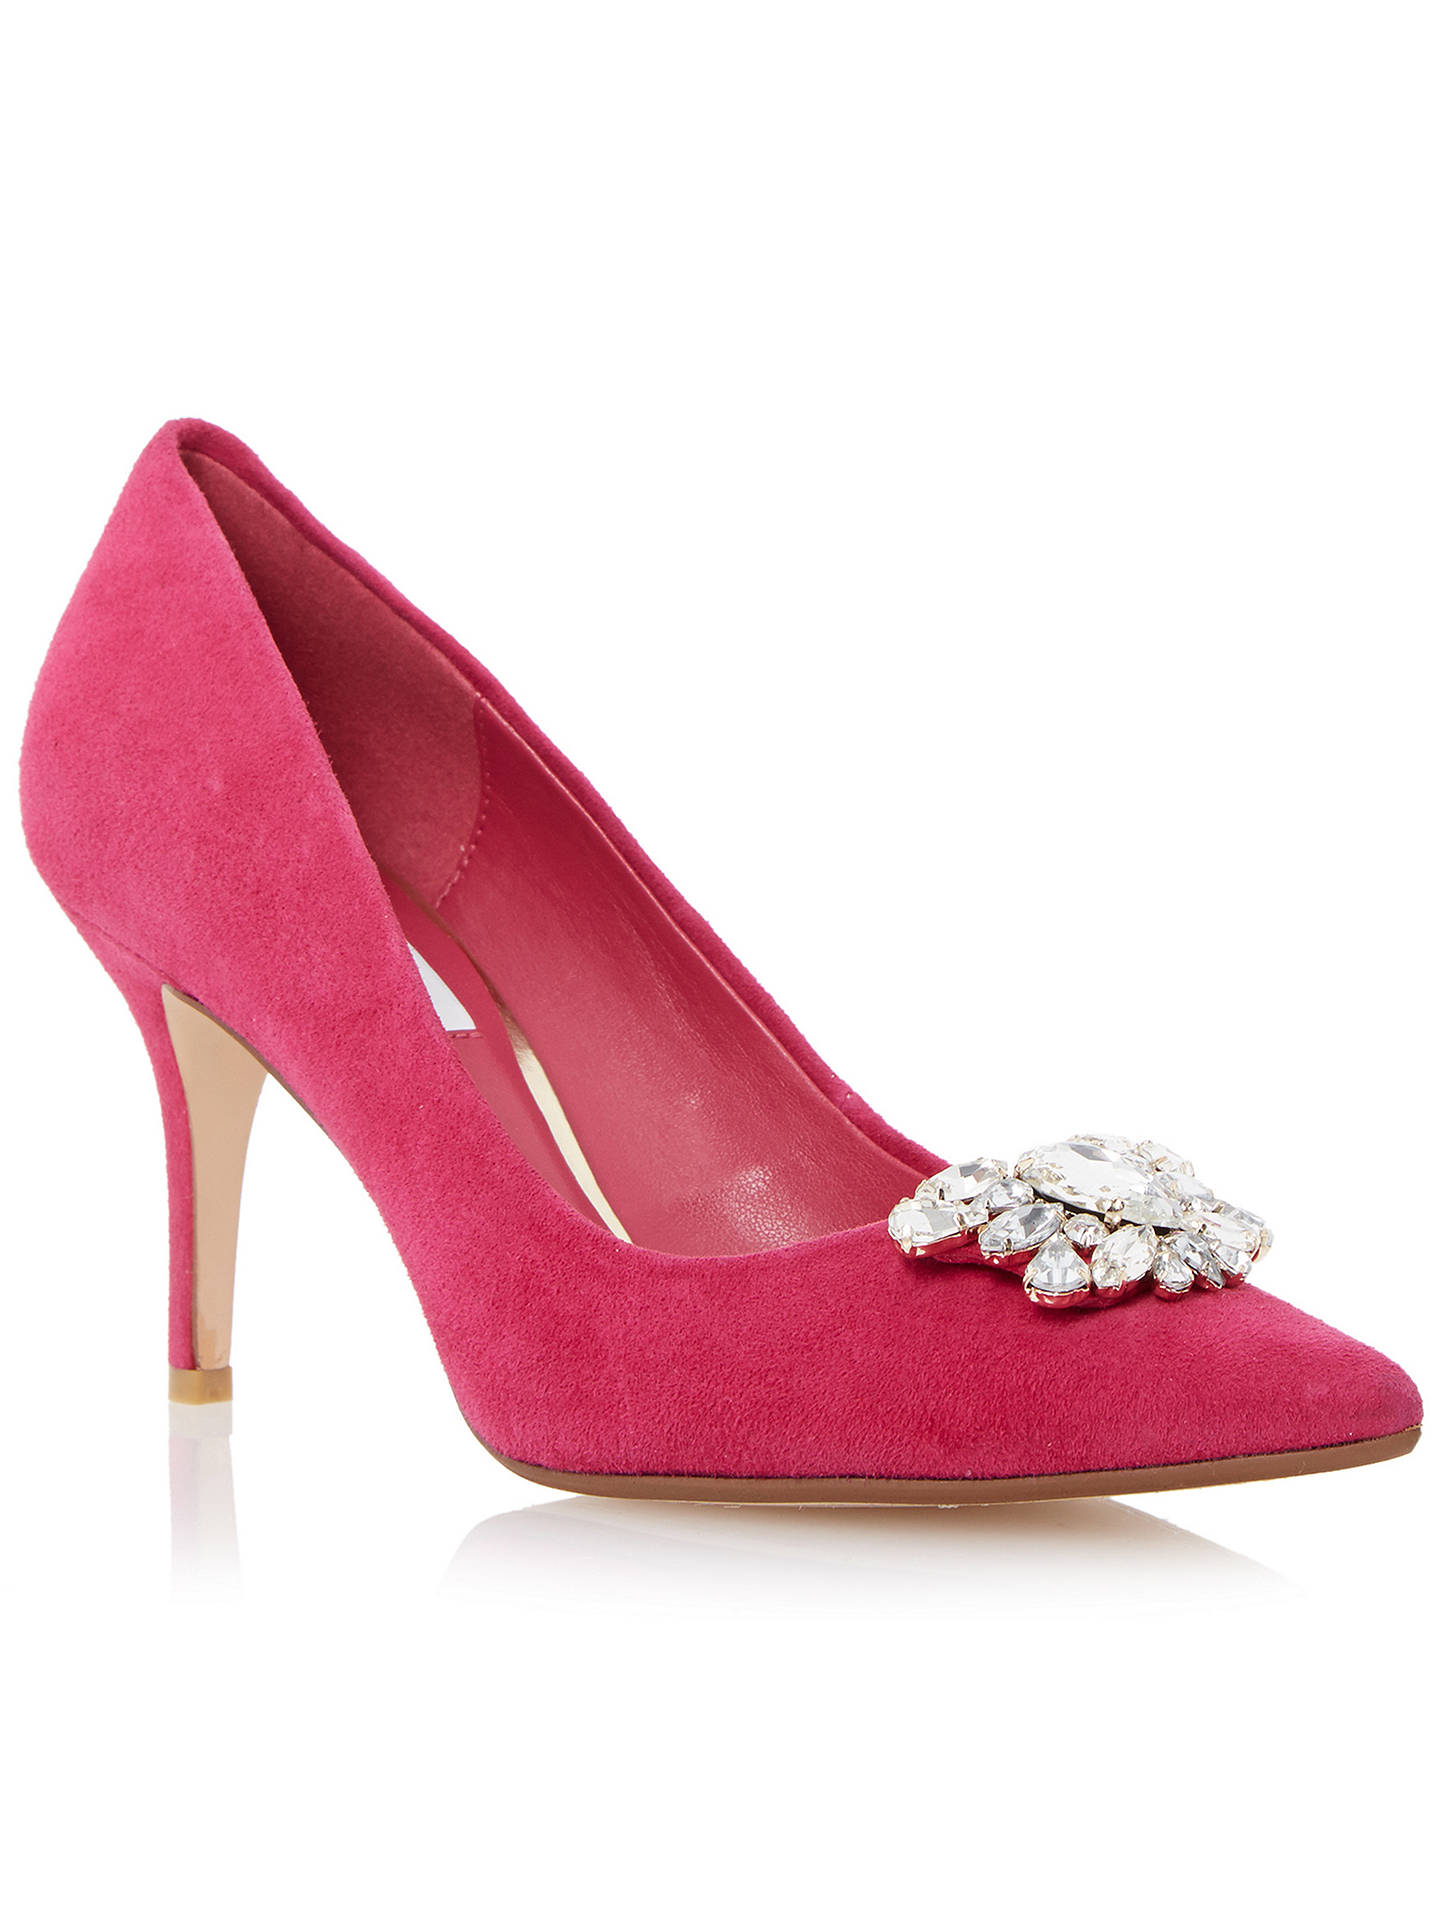 1281b2070a Buy Dune Belles Embellished Court Shoes, Raspberry, 3 Online at  johnlewis.com ...